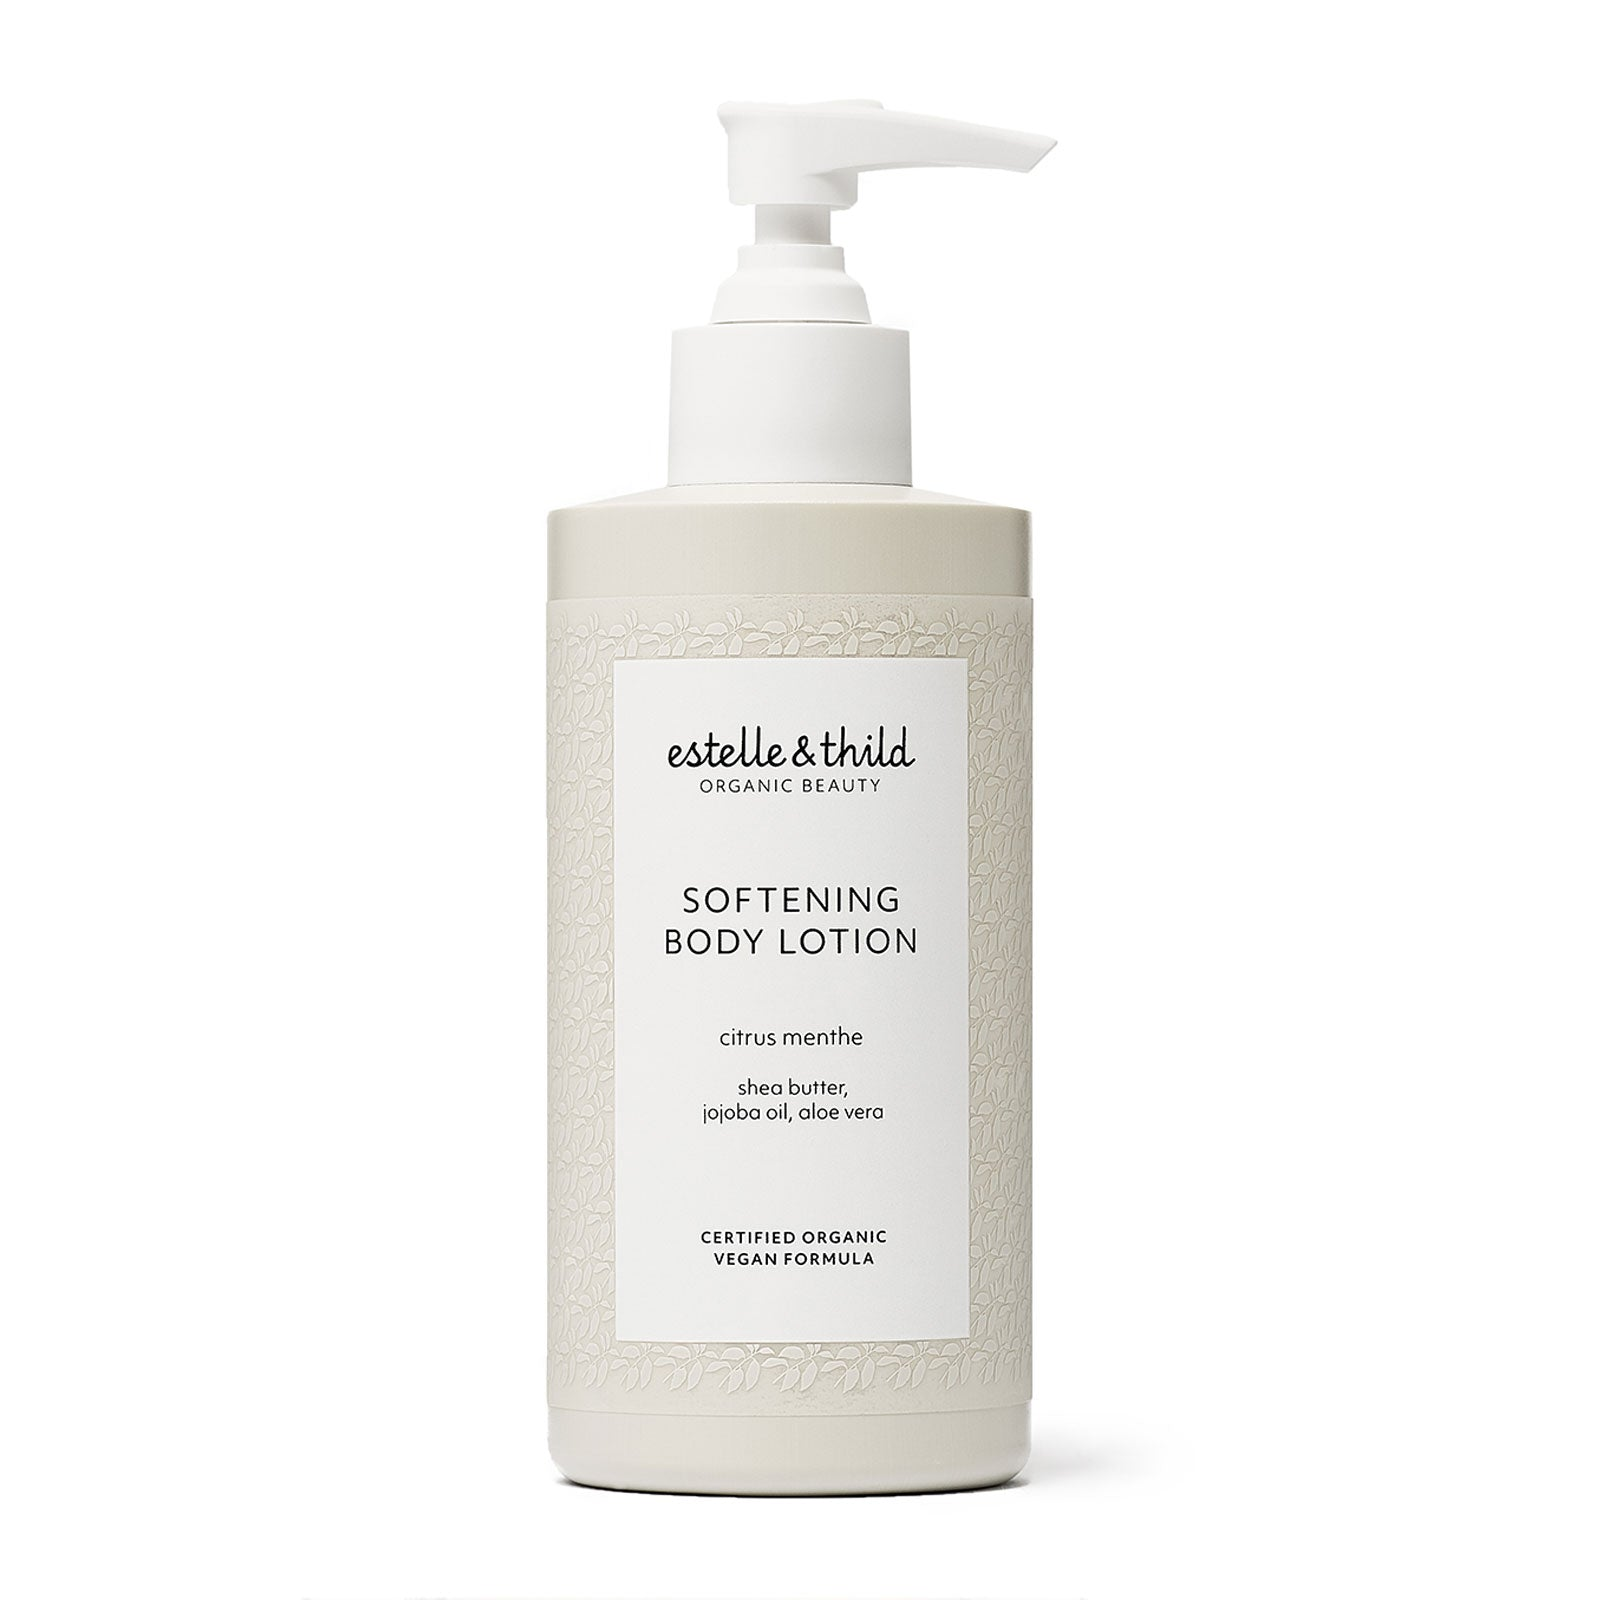 Estelle & Thild Citrus Menthe Softening Body Lotion 200ml